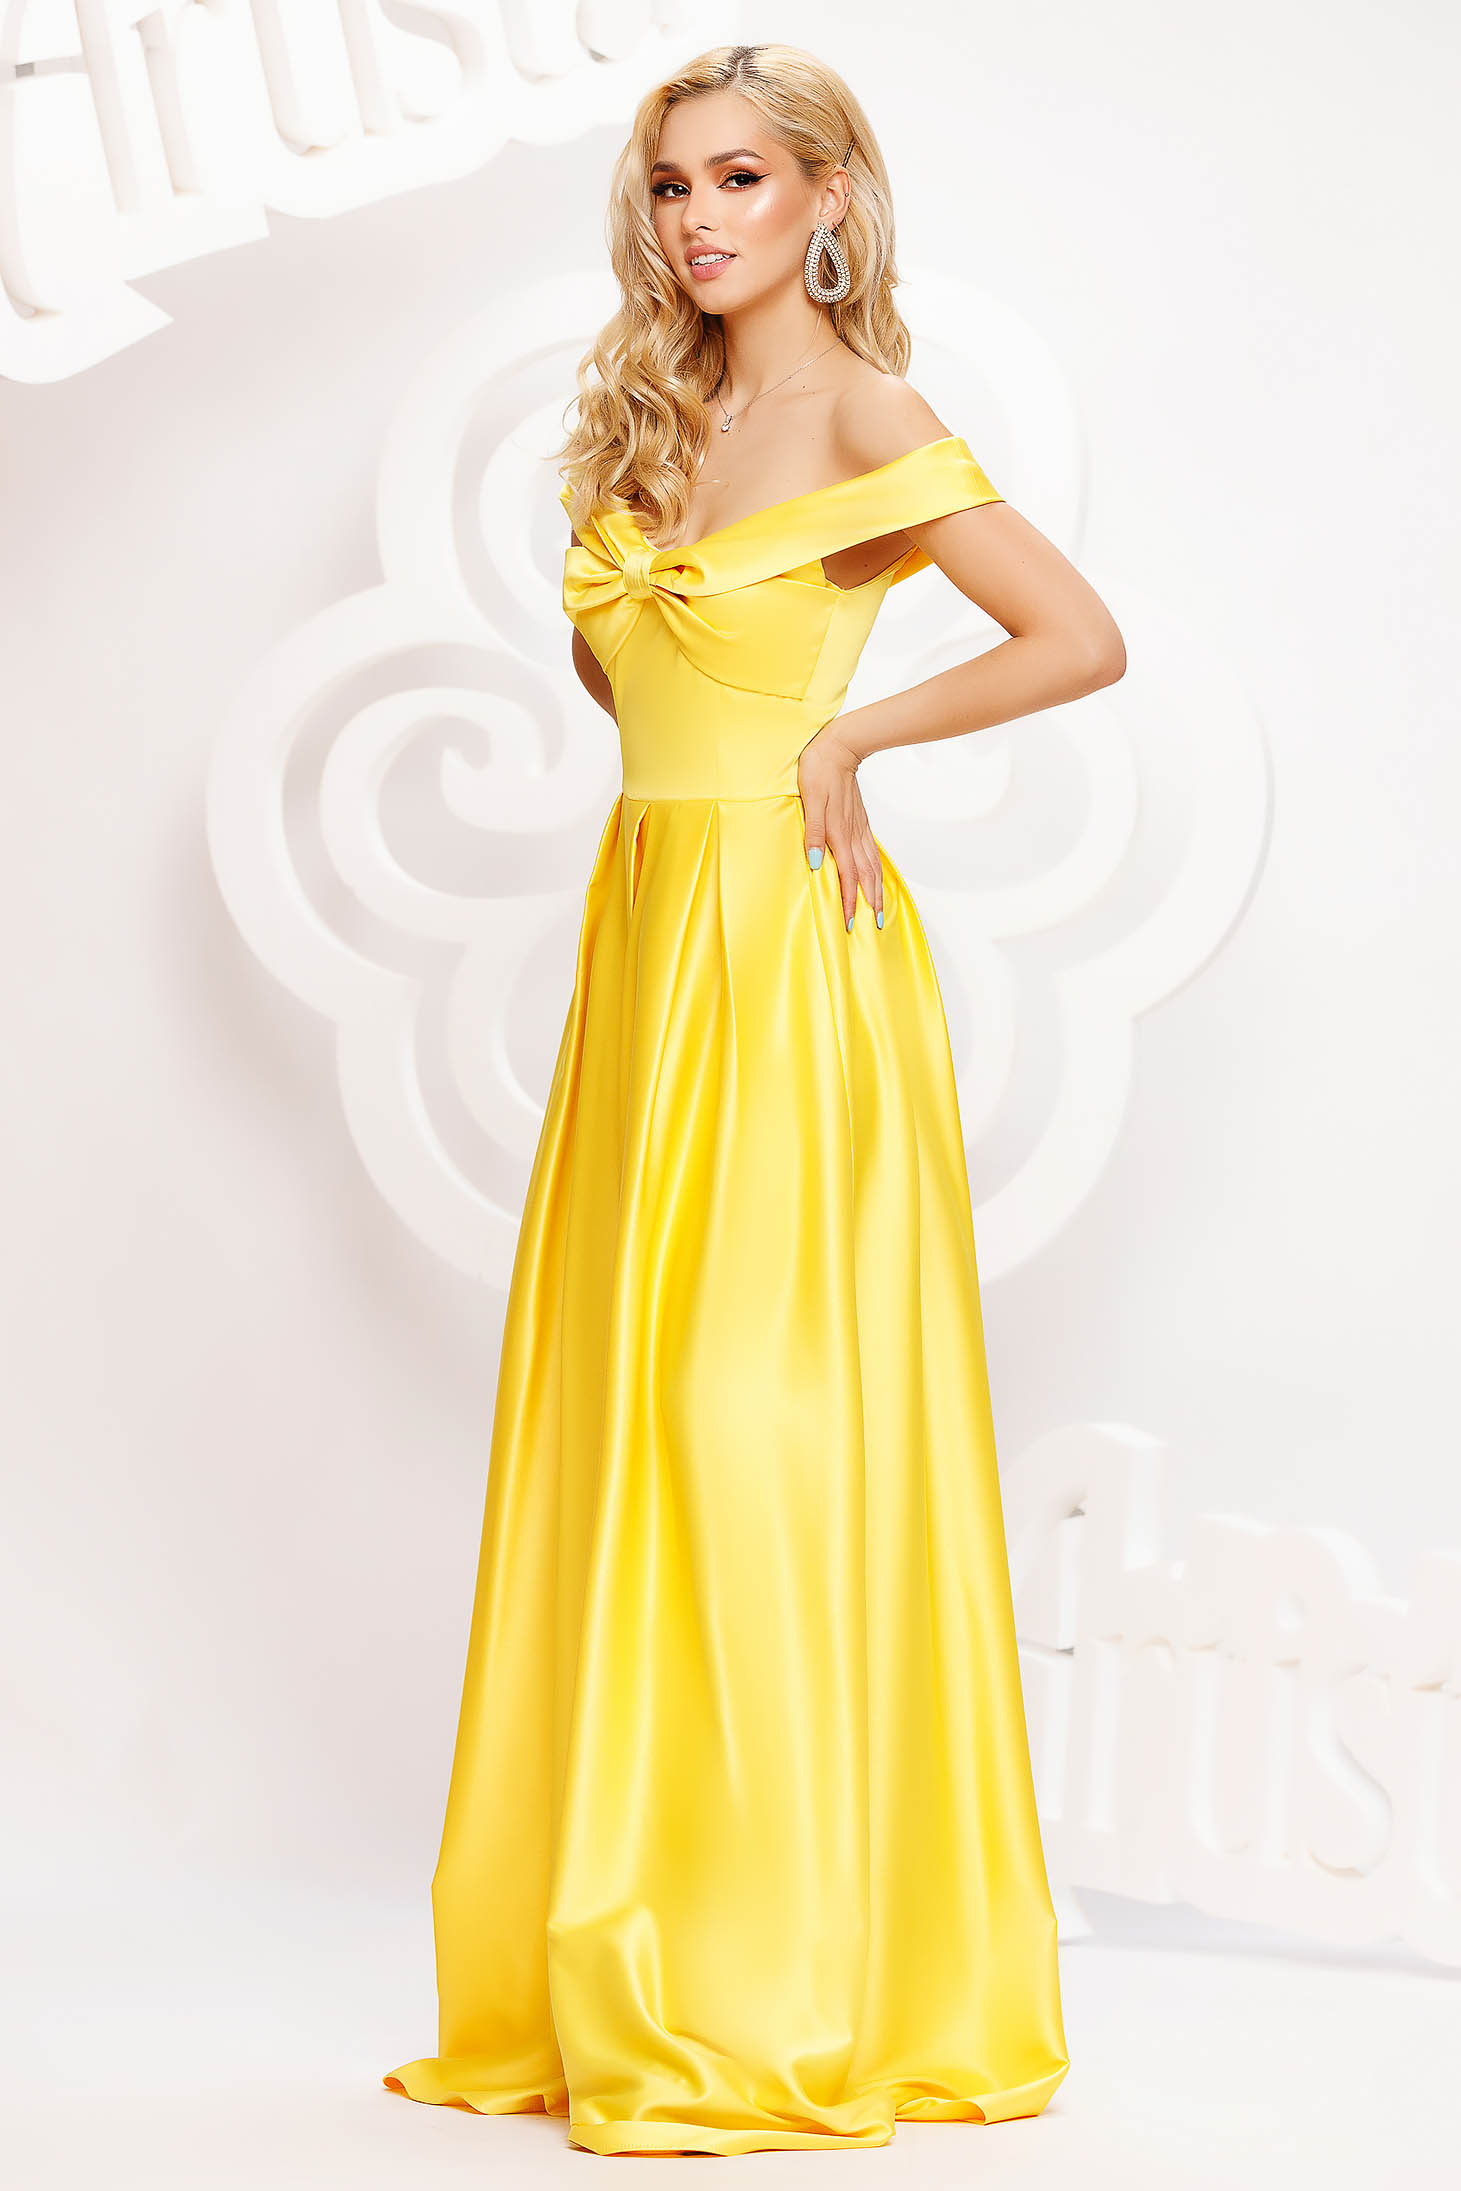 Yellow dress long cloche from satin naked shoulders with bow